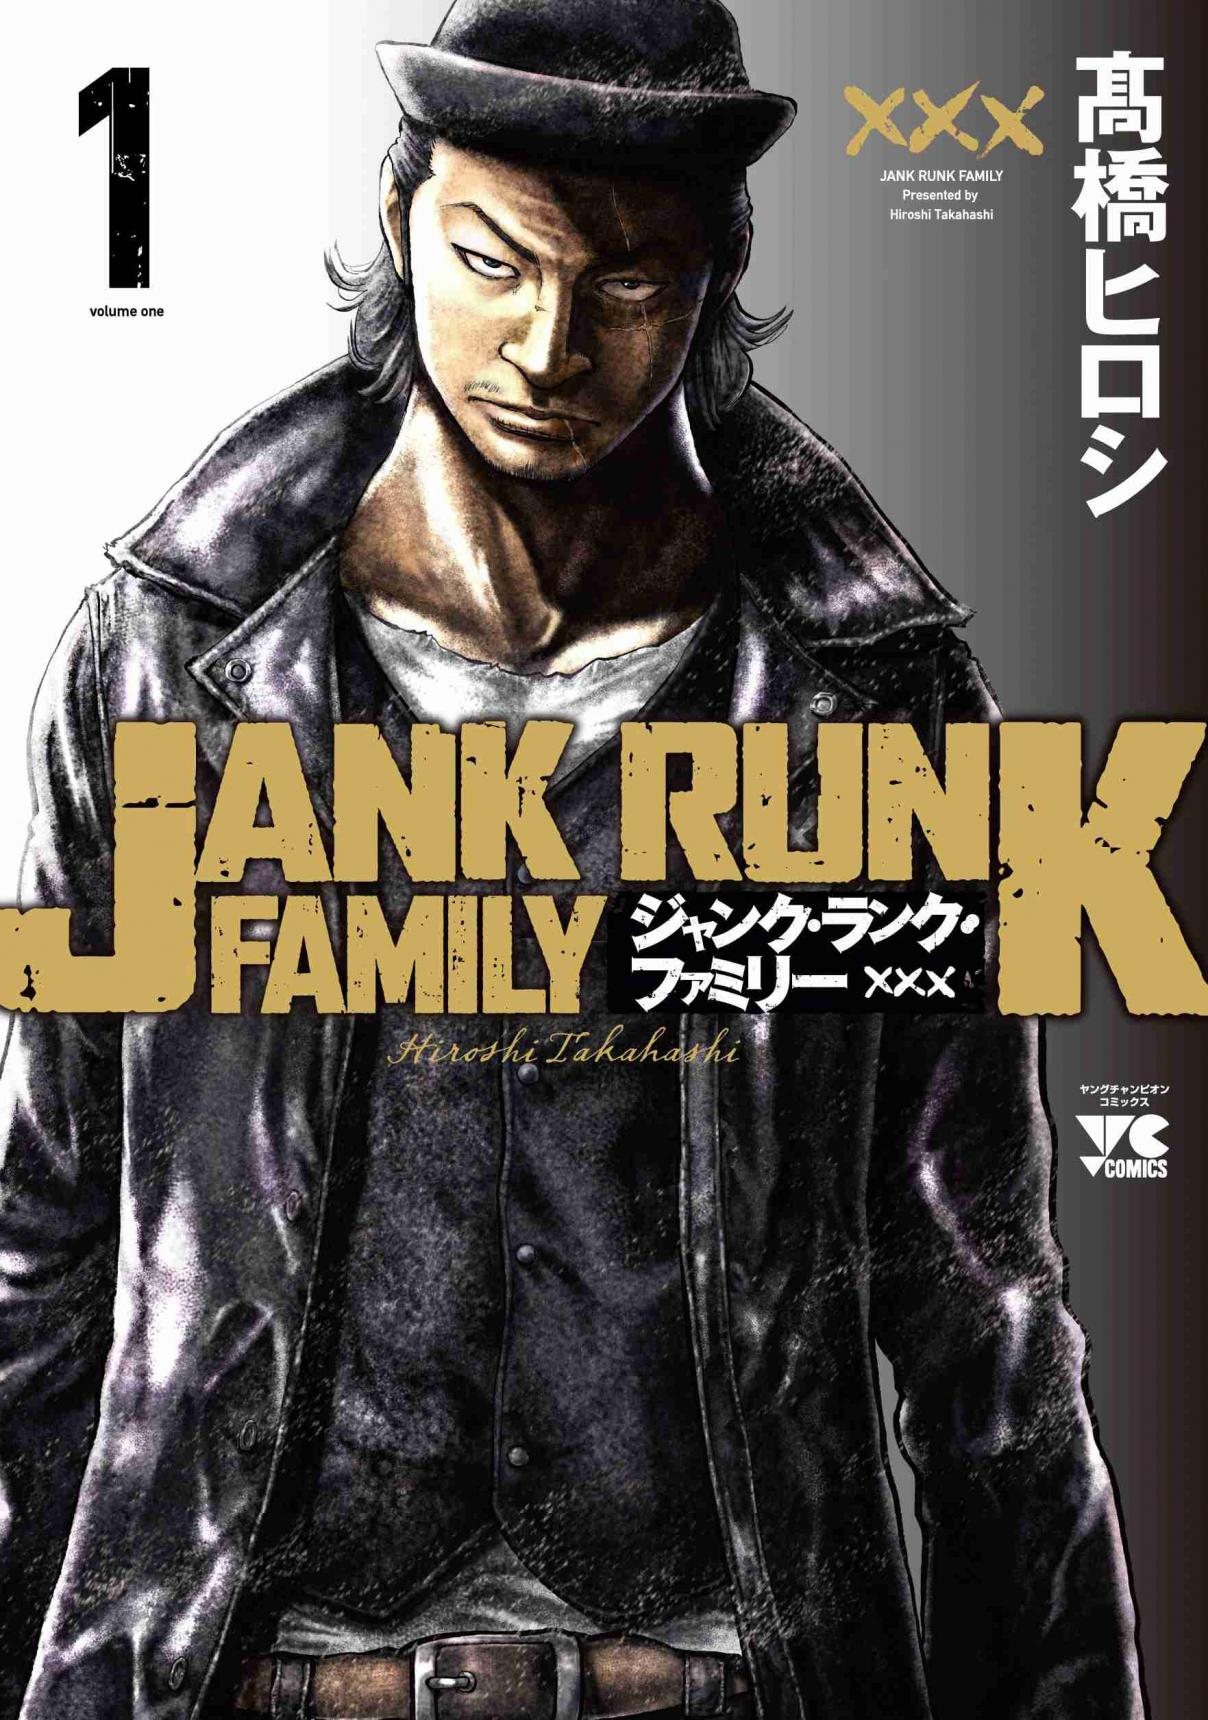 Jank Runk Family Vol. 1 Ch. 1 The Pursued Boy